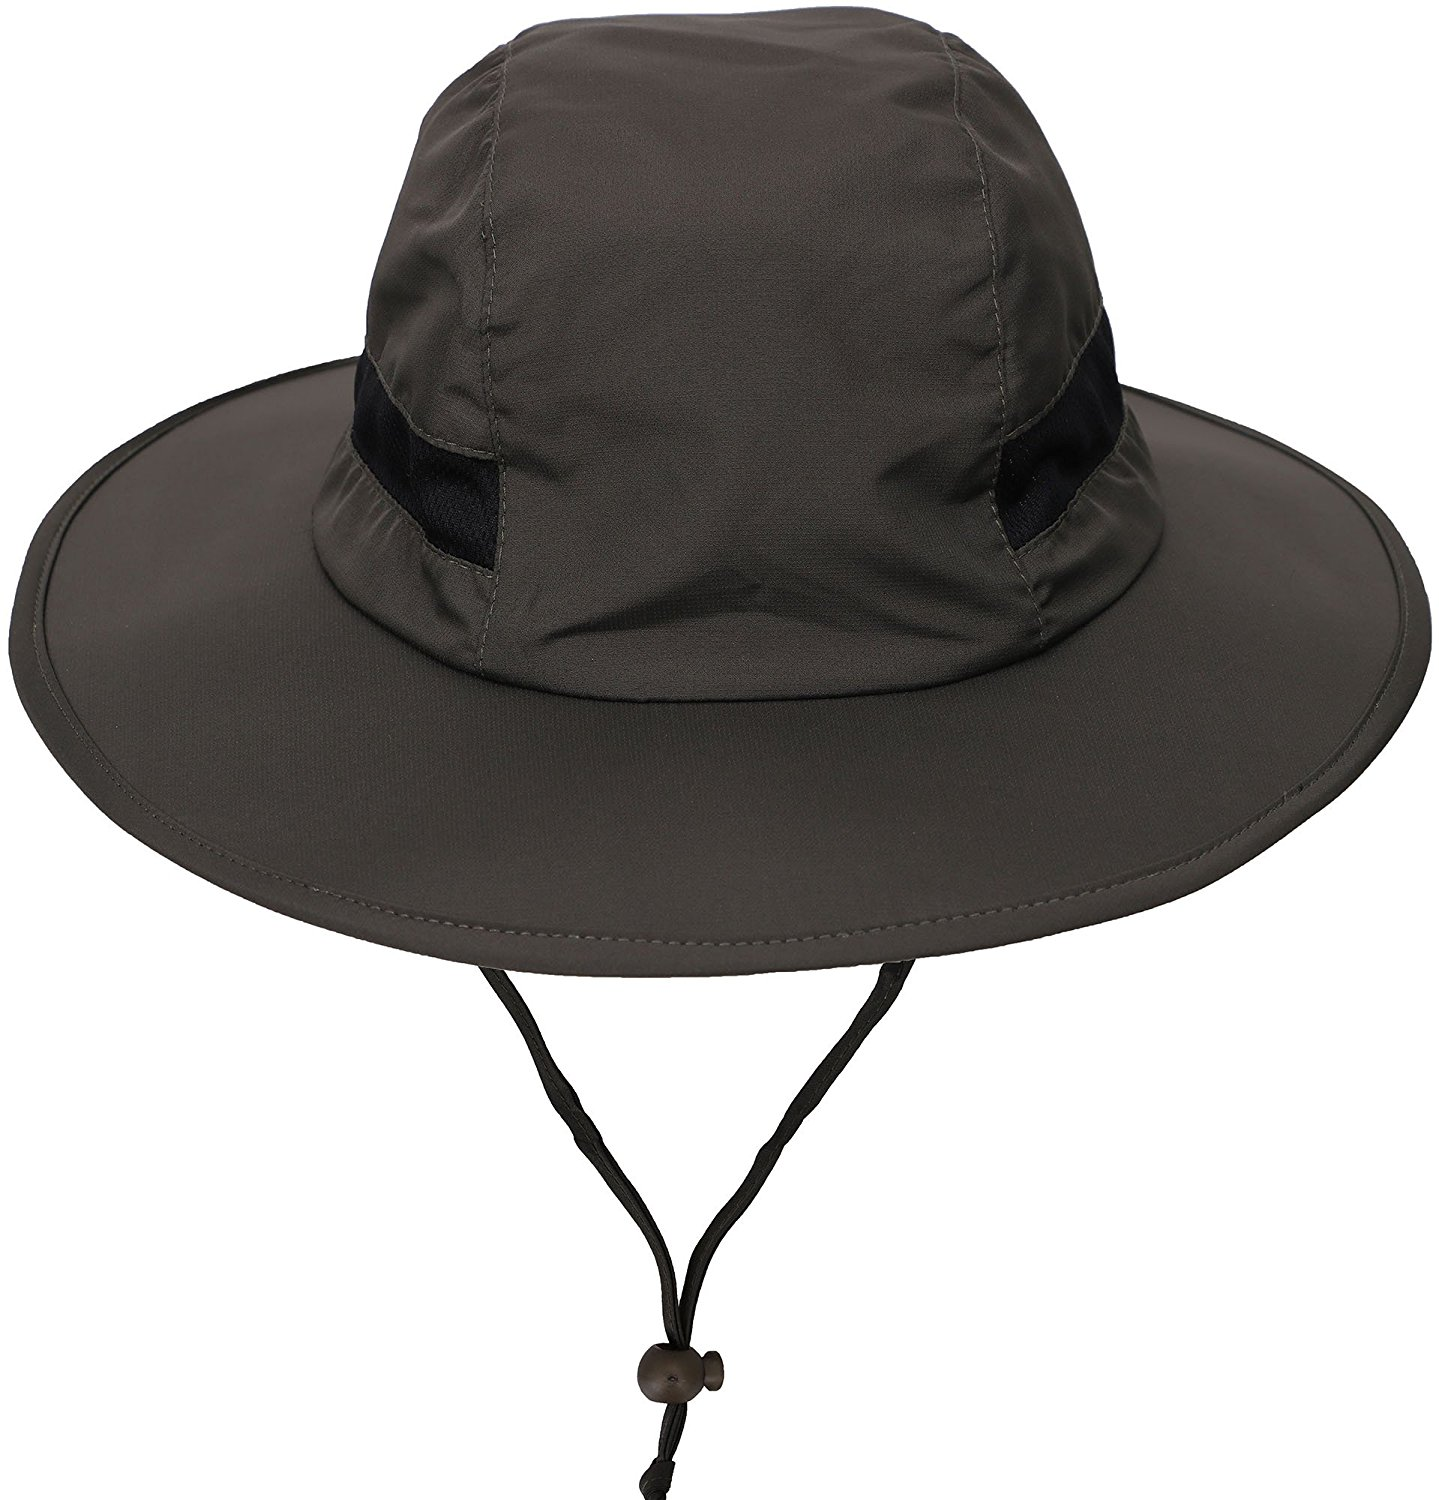 a4d5992682d73 Get Quotations · Waterproof Outdoor Bucket Hat SPF 50+ UV Protection Safari  Sun Cap Boonie Fishing Hiking Hat